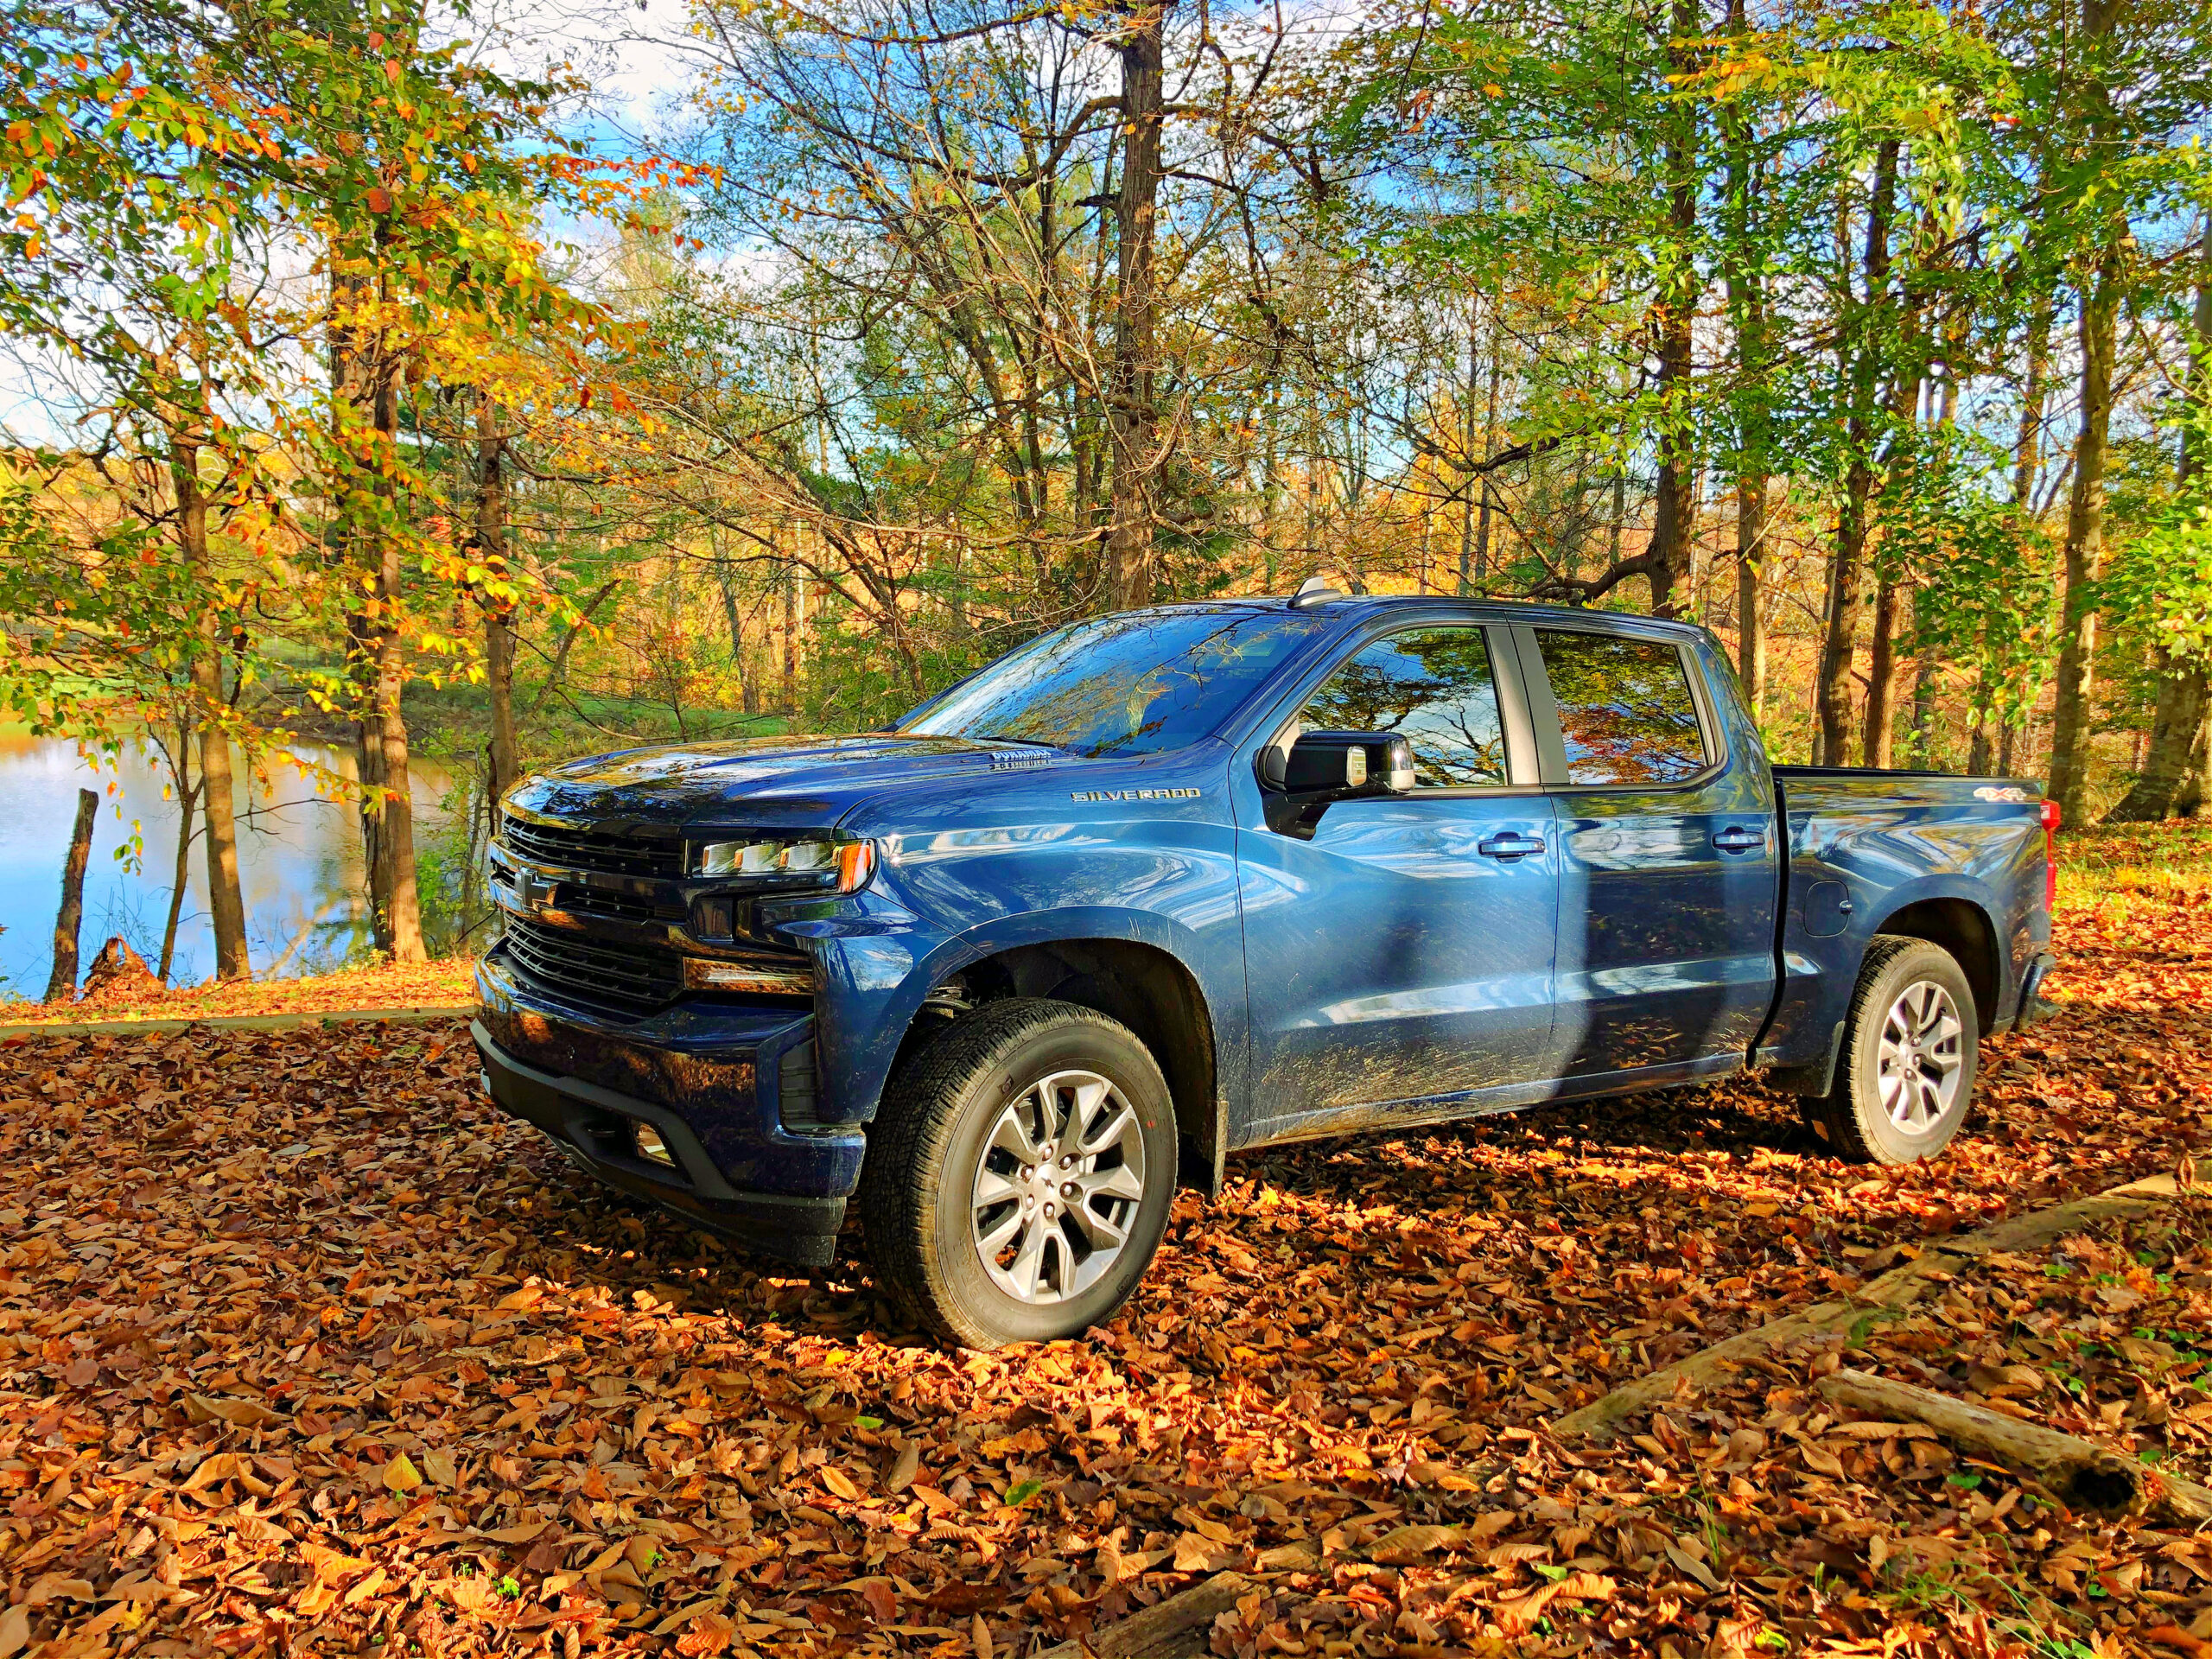 Chevy Silverado in Campbellsville KY woods.